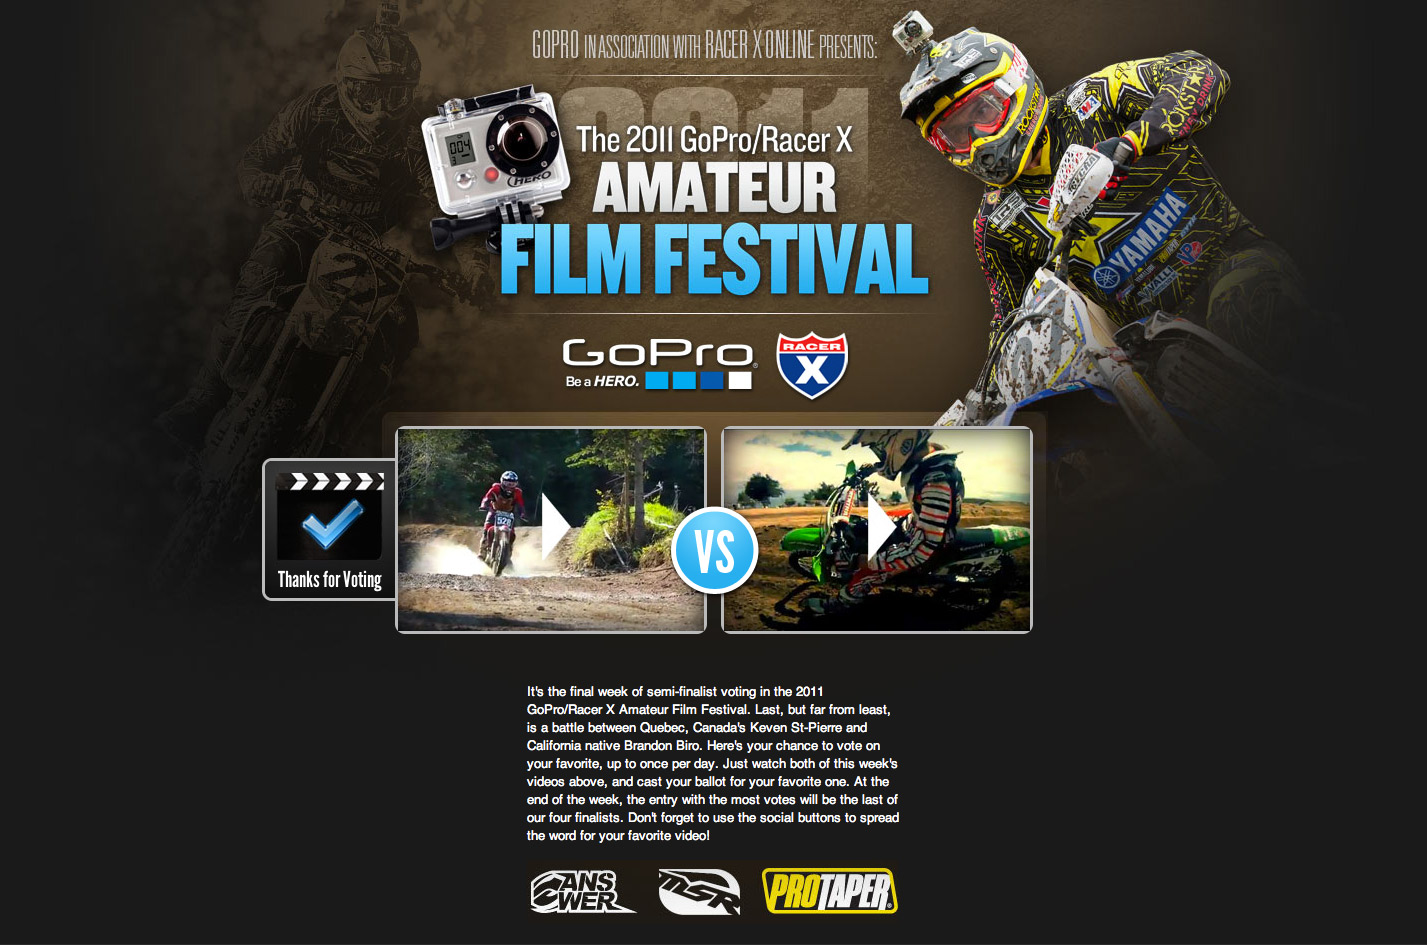 Racer X Amateur Film Festival - Head to Head Voting